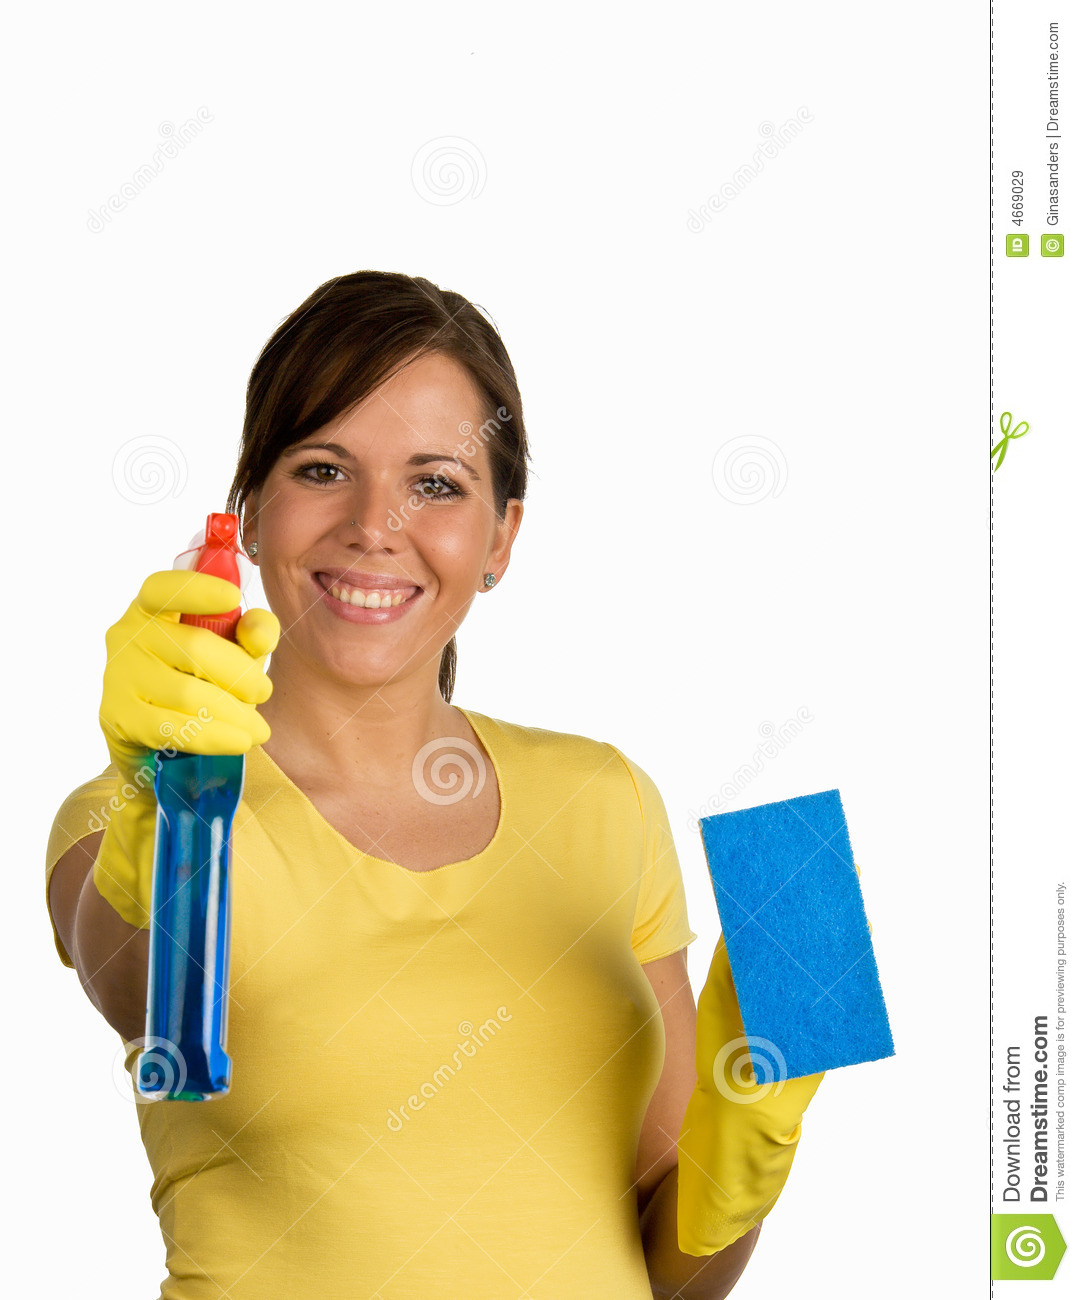 Cleaning woman stock image. Image of cheerful, confidence ...